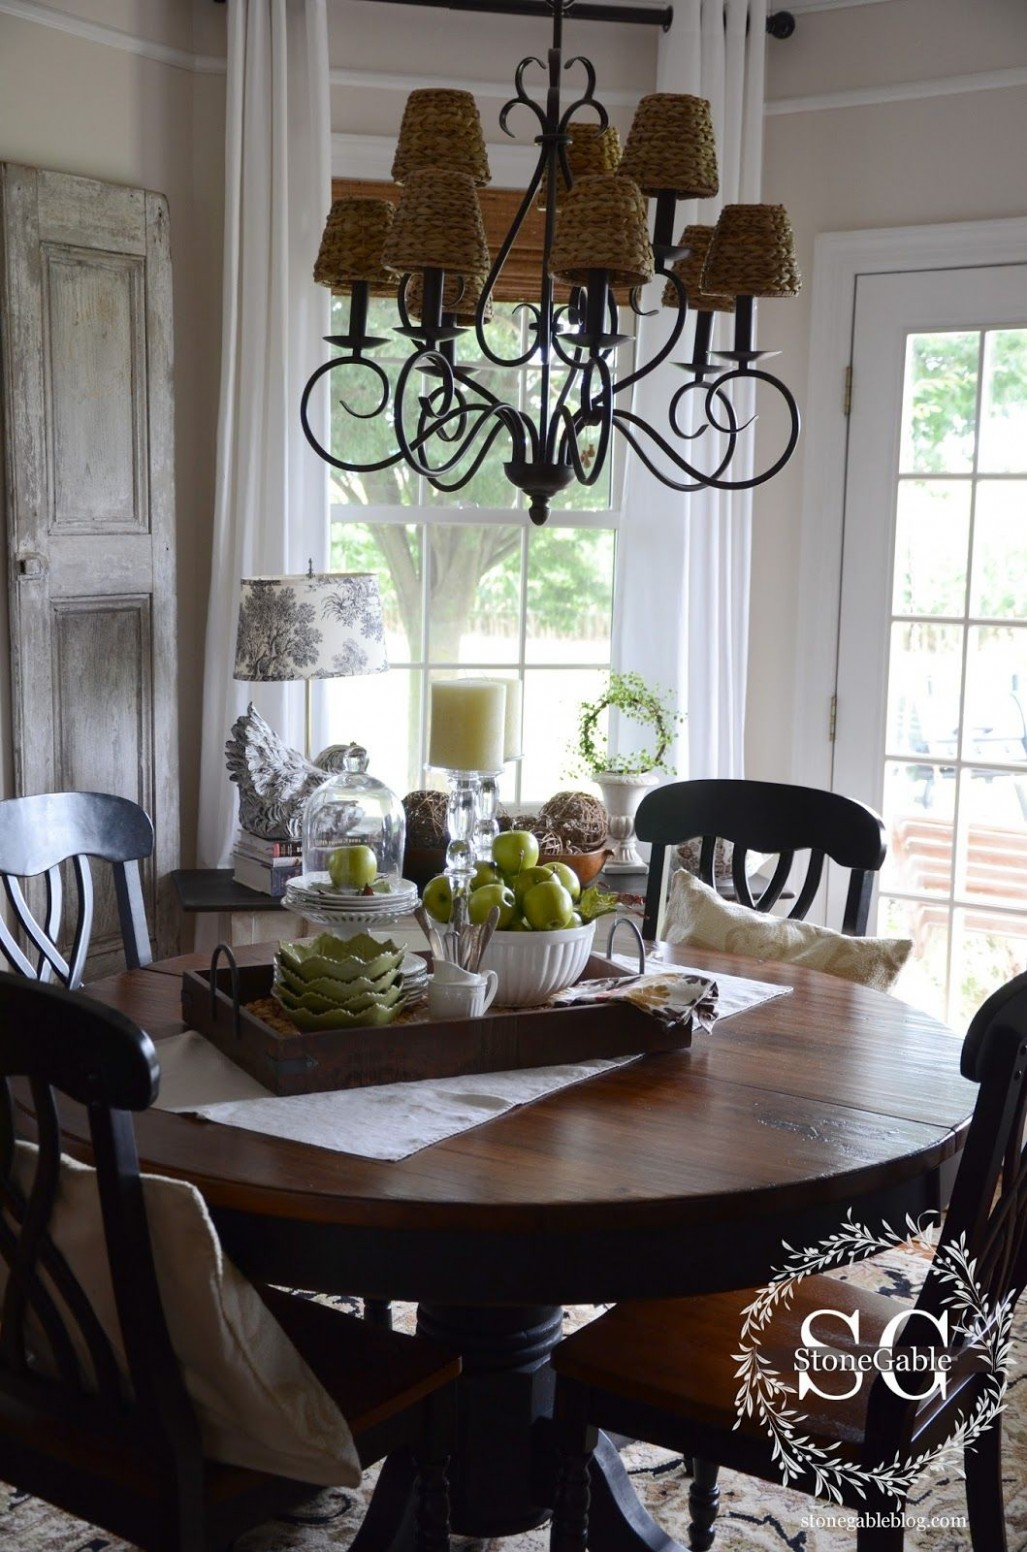 Dining Table Decor for an Everyday Look - TIDBITS&TWINE  Dining  - Dining Room Ideas Round Table